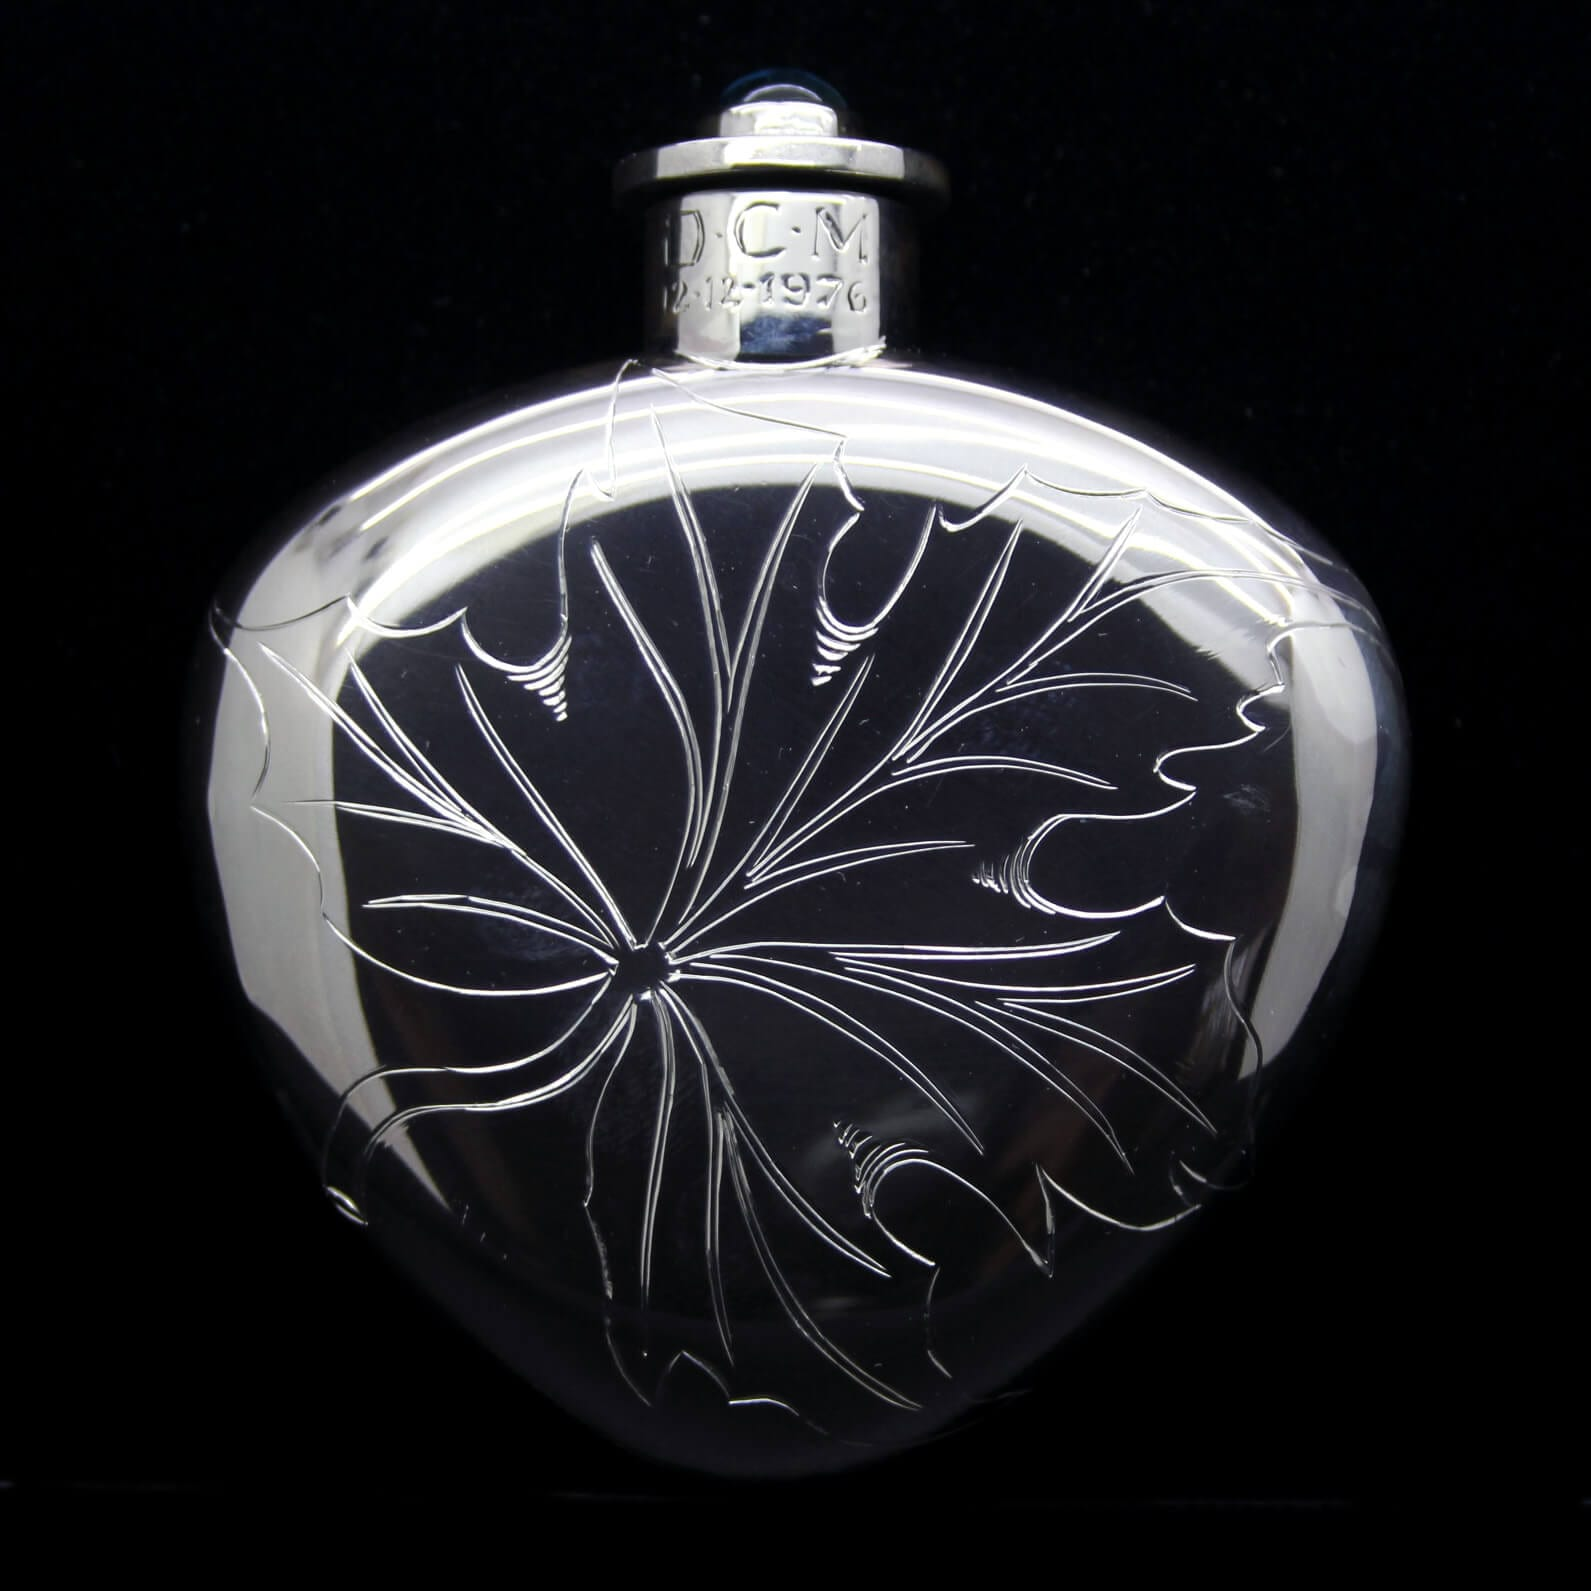 Handmade solid Silver hipflask with engraved design by Julian Stephens